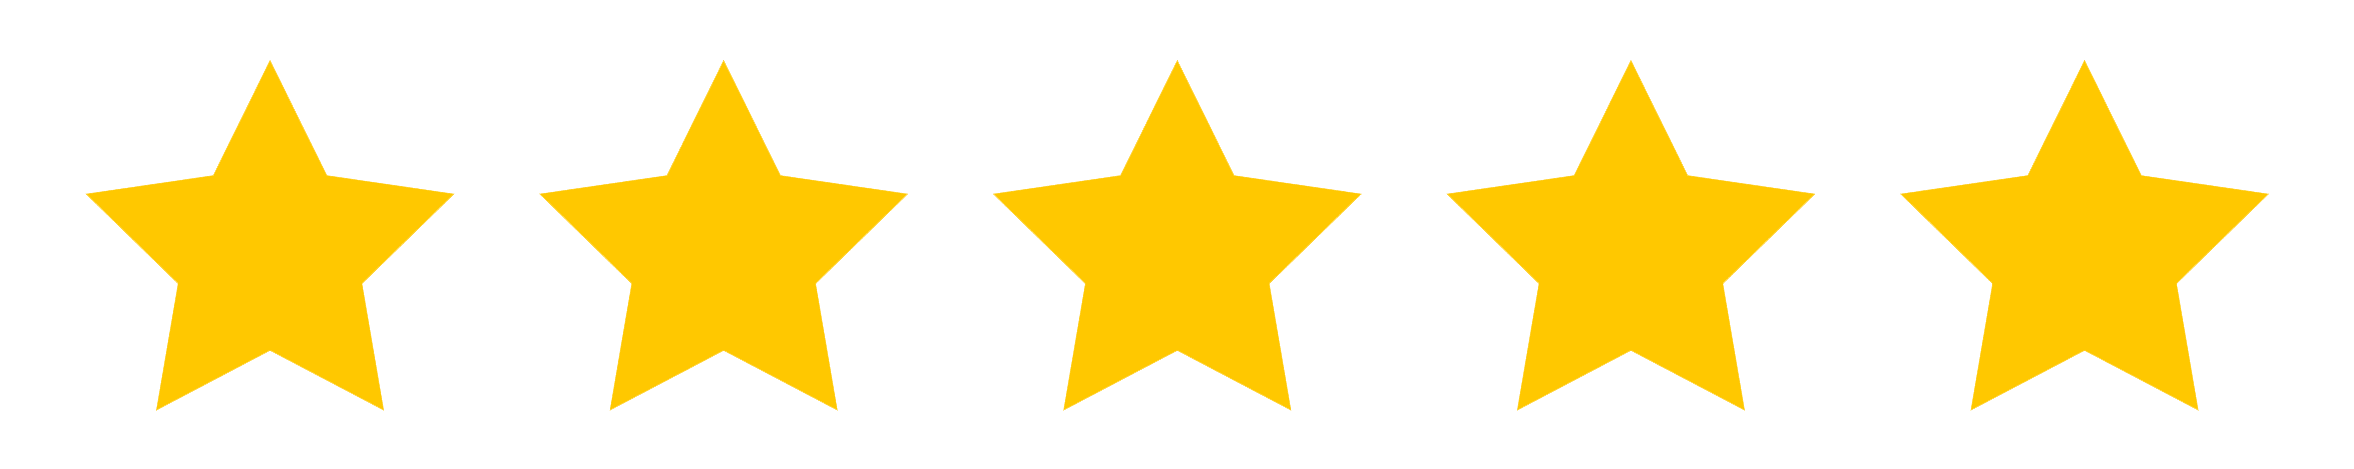 Reviews star rating from Diane C. for A-1 Self Storage in Alhambra, California